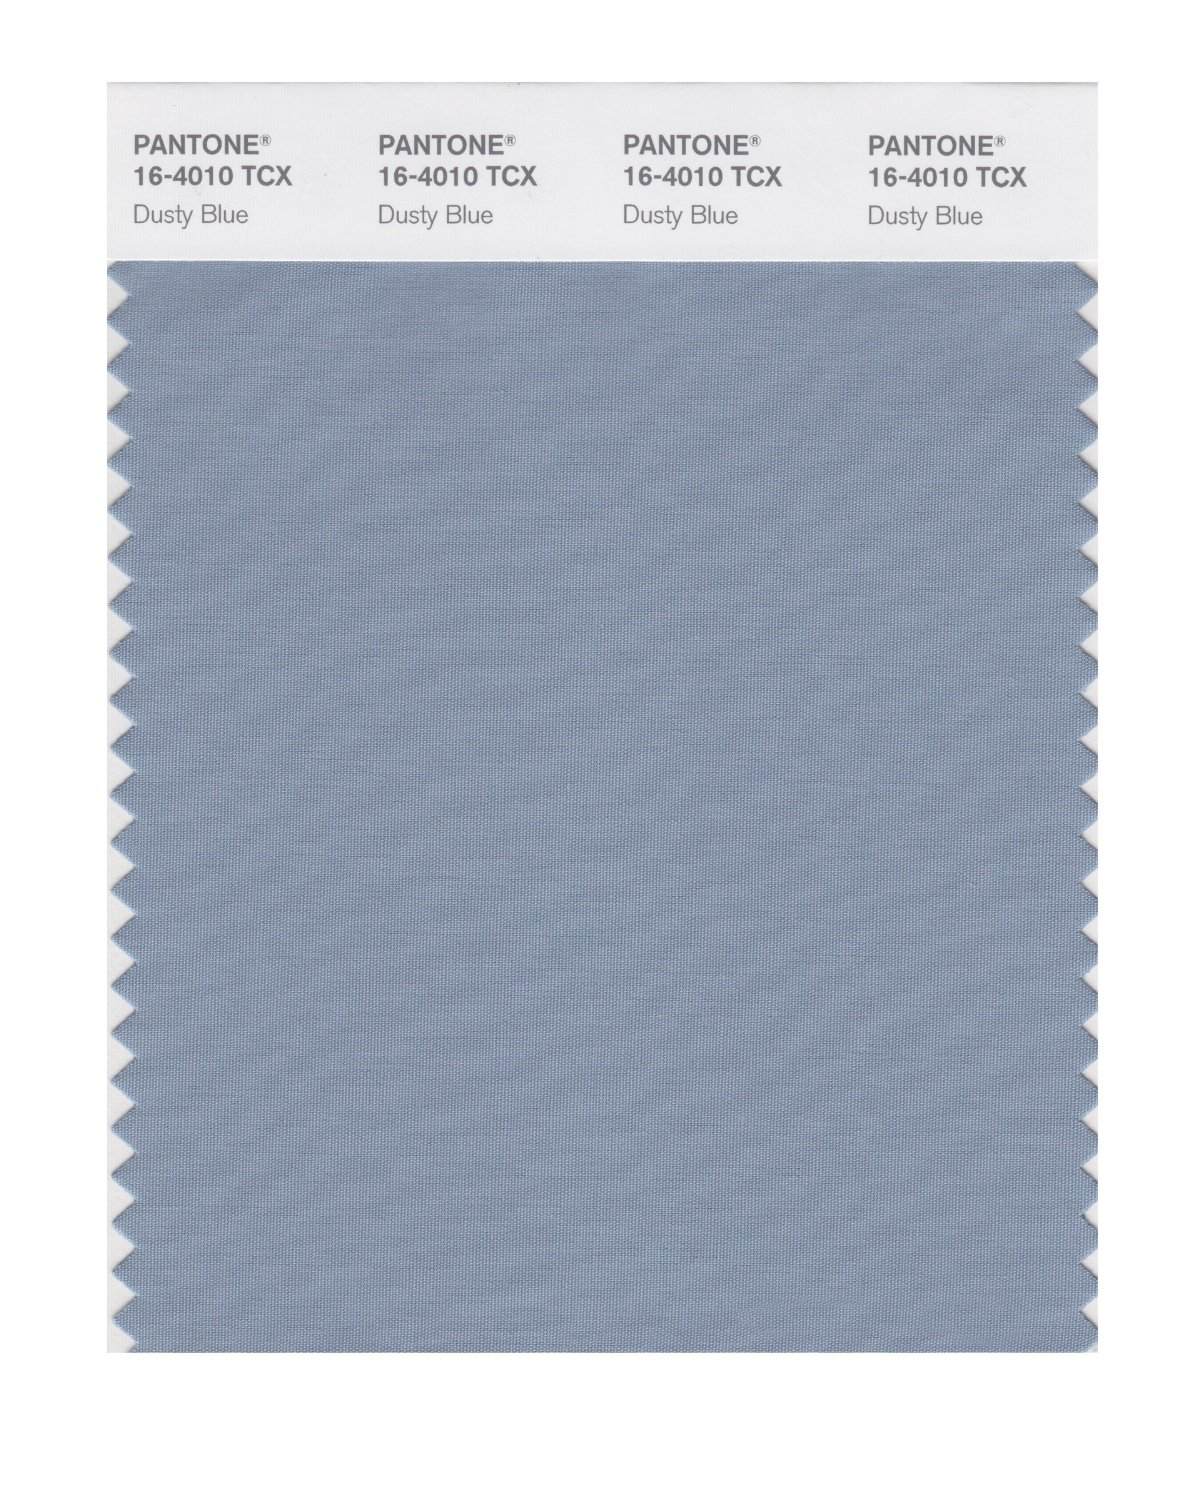 Pantone Smart Swatch 16-4010 Dusty Blue